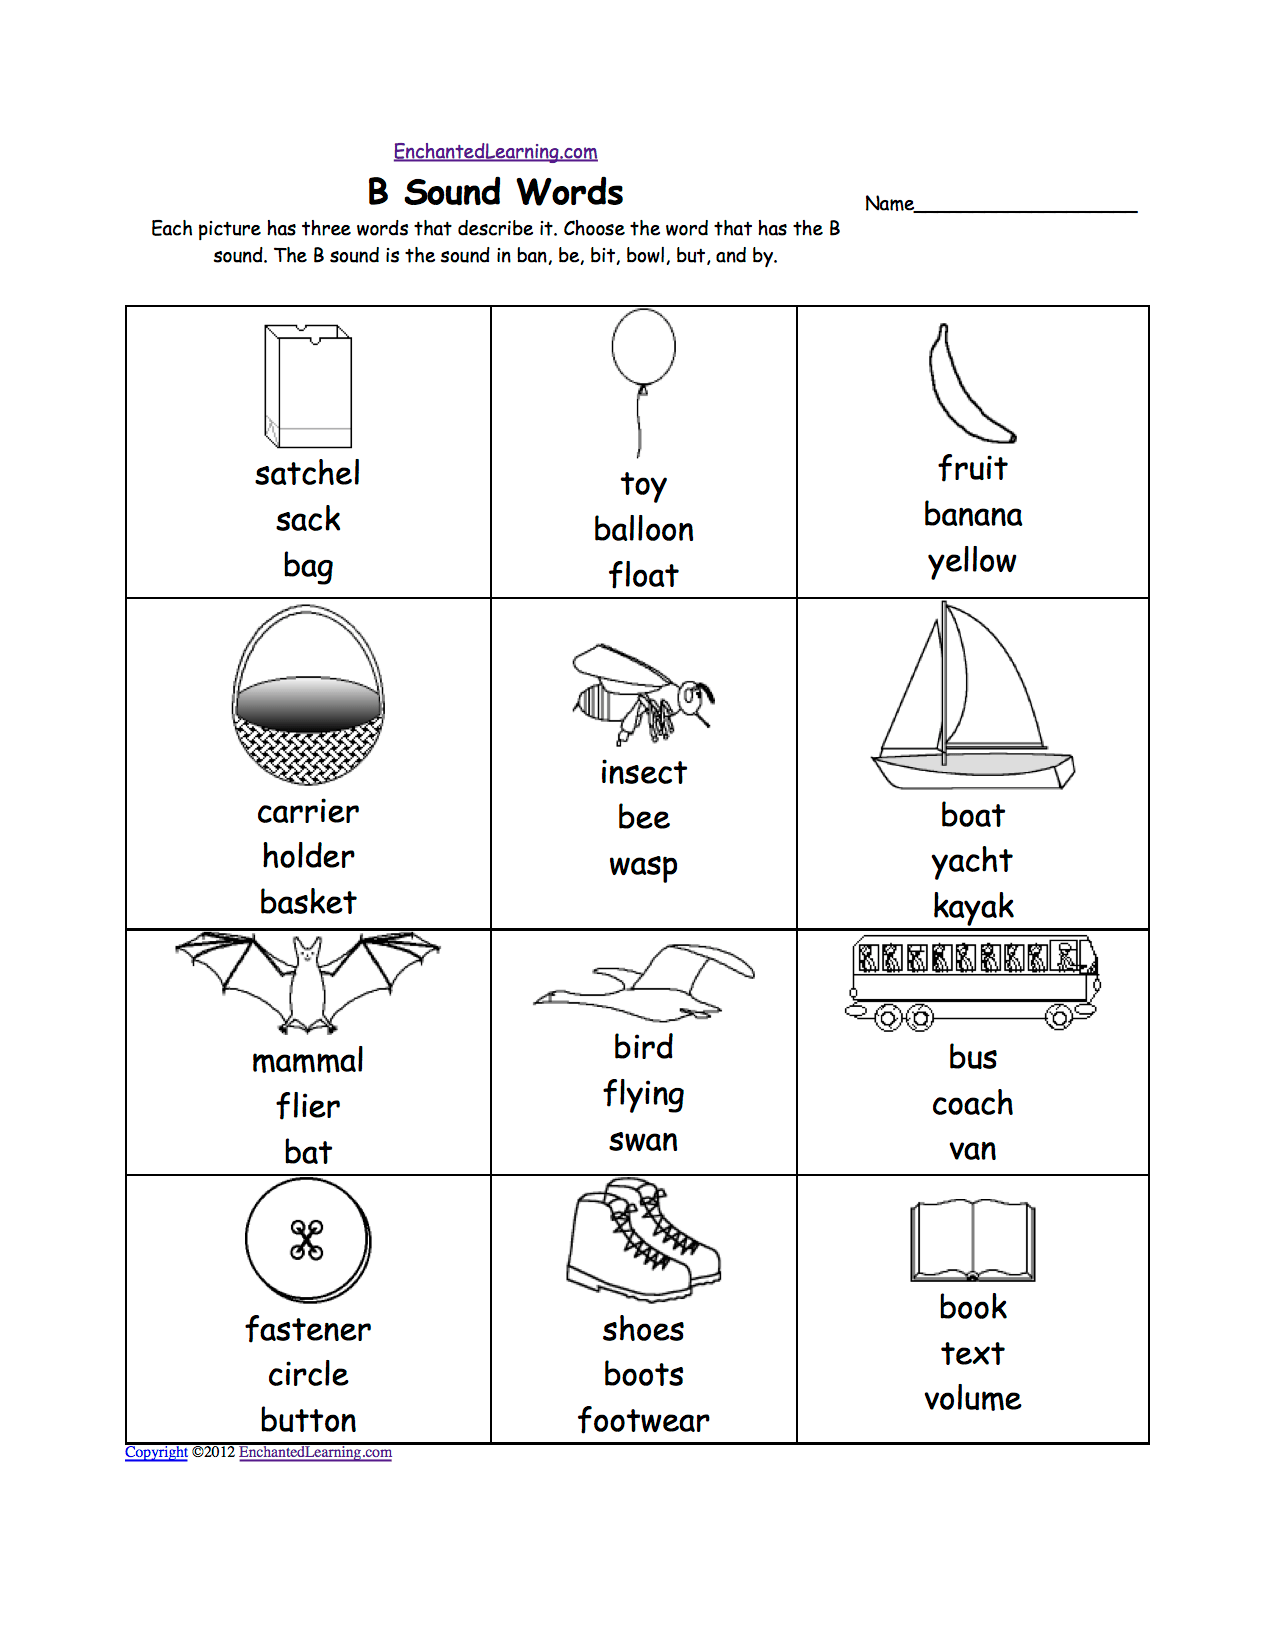 Worksheet Letter B Worksheets For Preschool Worksheet Fun Worksheet Study Site